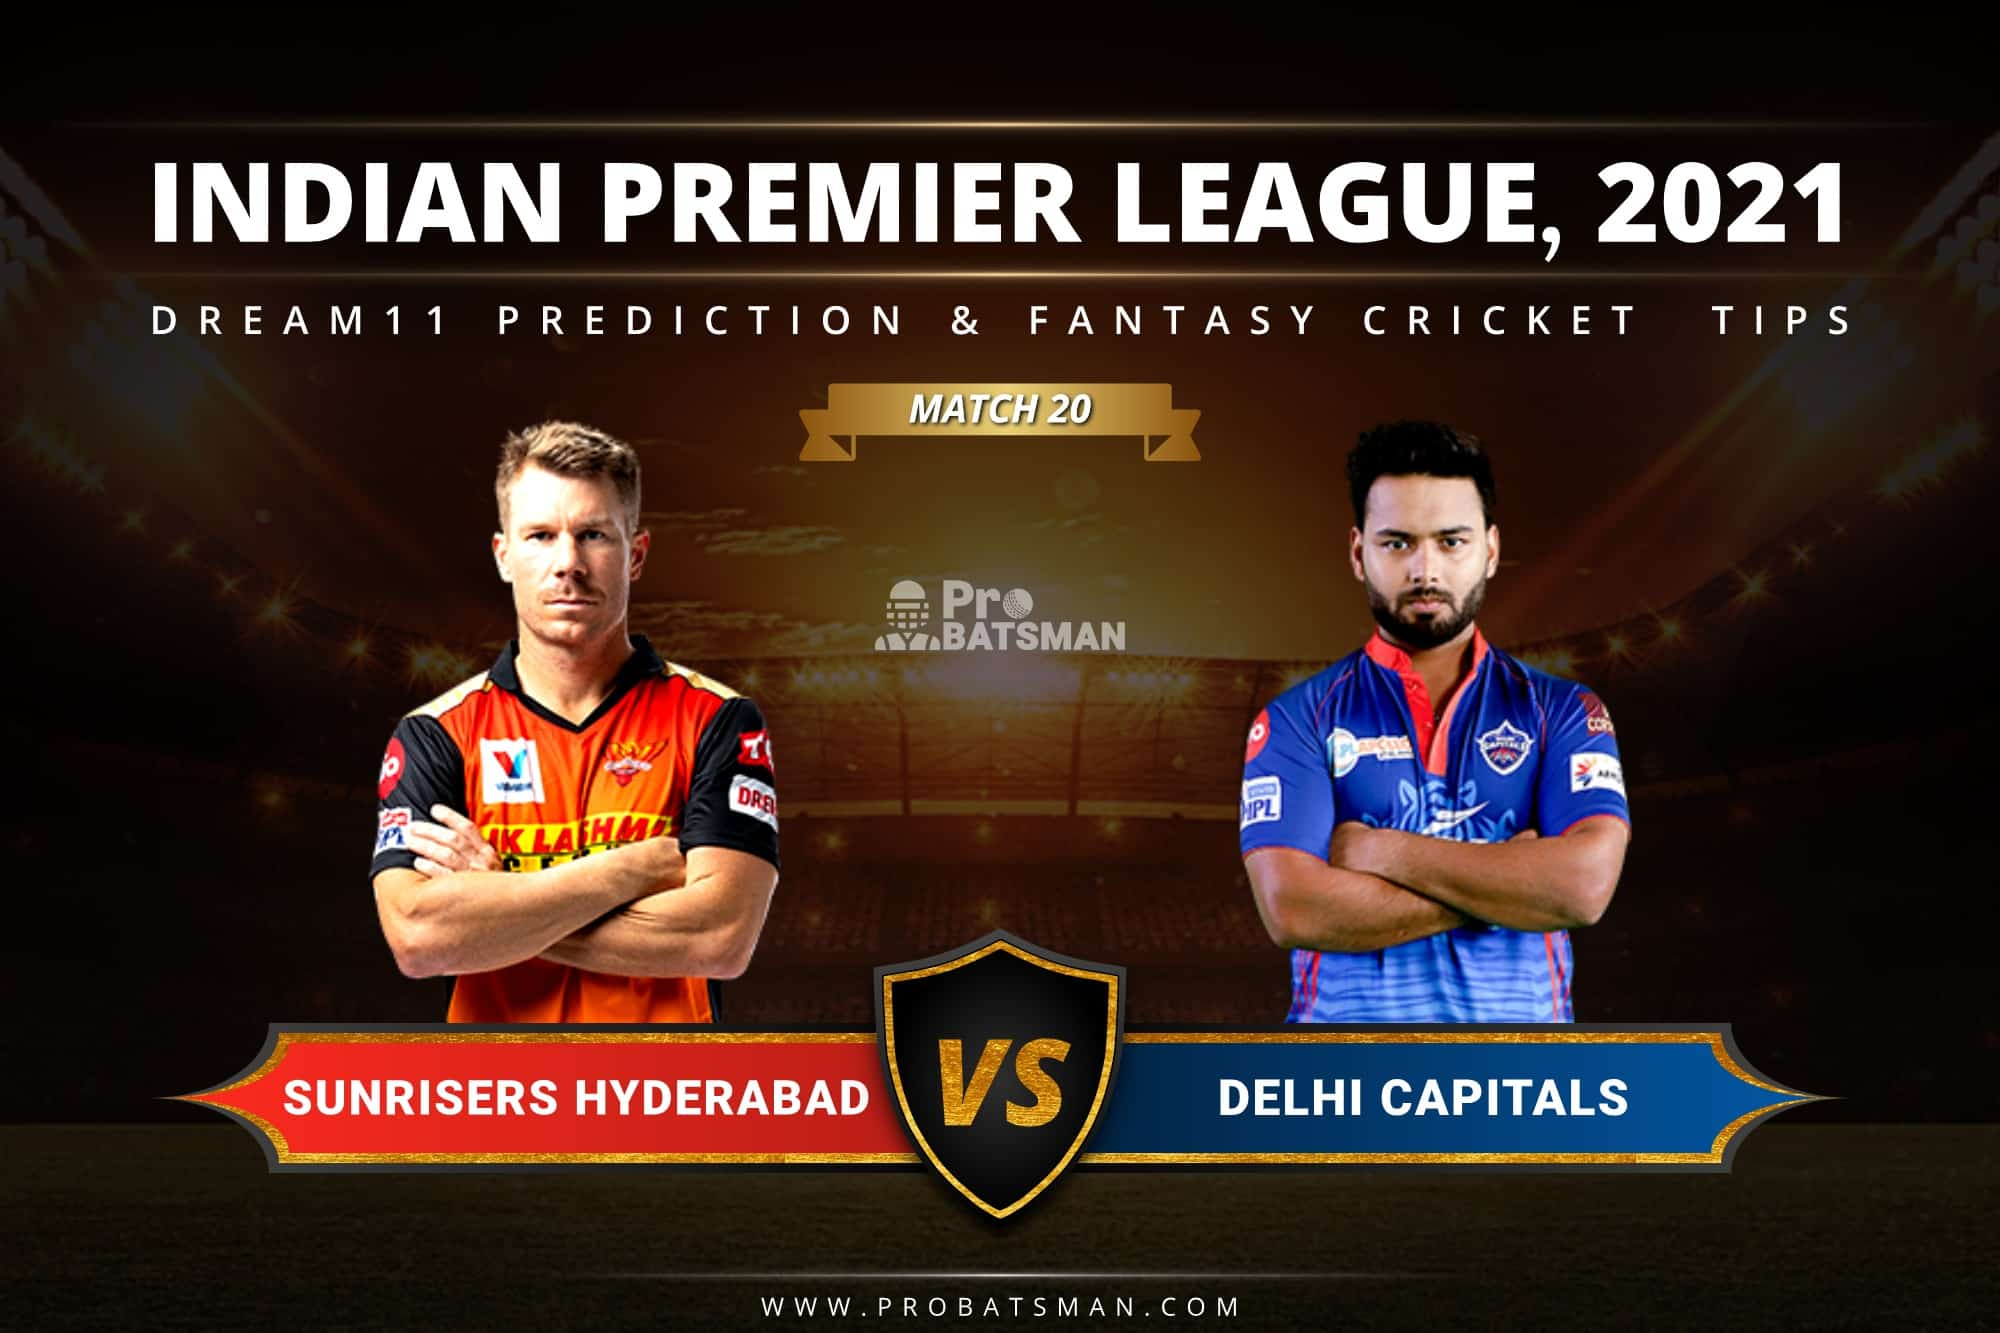 SRH vs DC Dream11 Prediction: Fantasy Cricket Tips, Playing XI, Pitch Report, Stats & Injury Updates of Match 20, IPL 2021